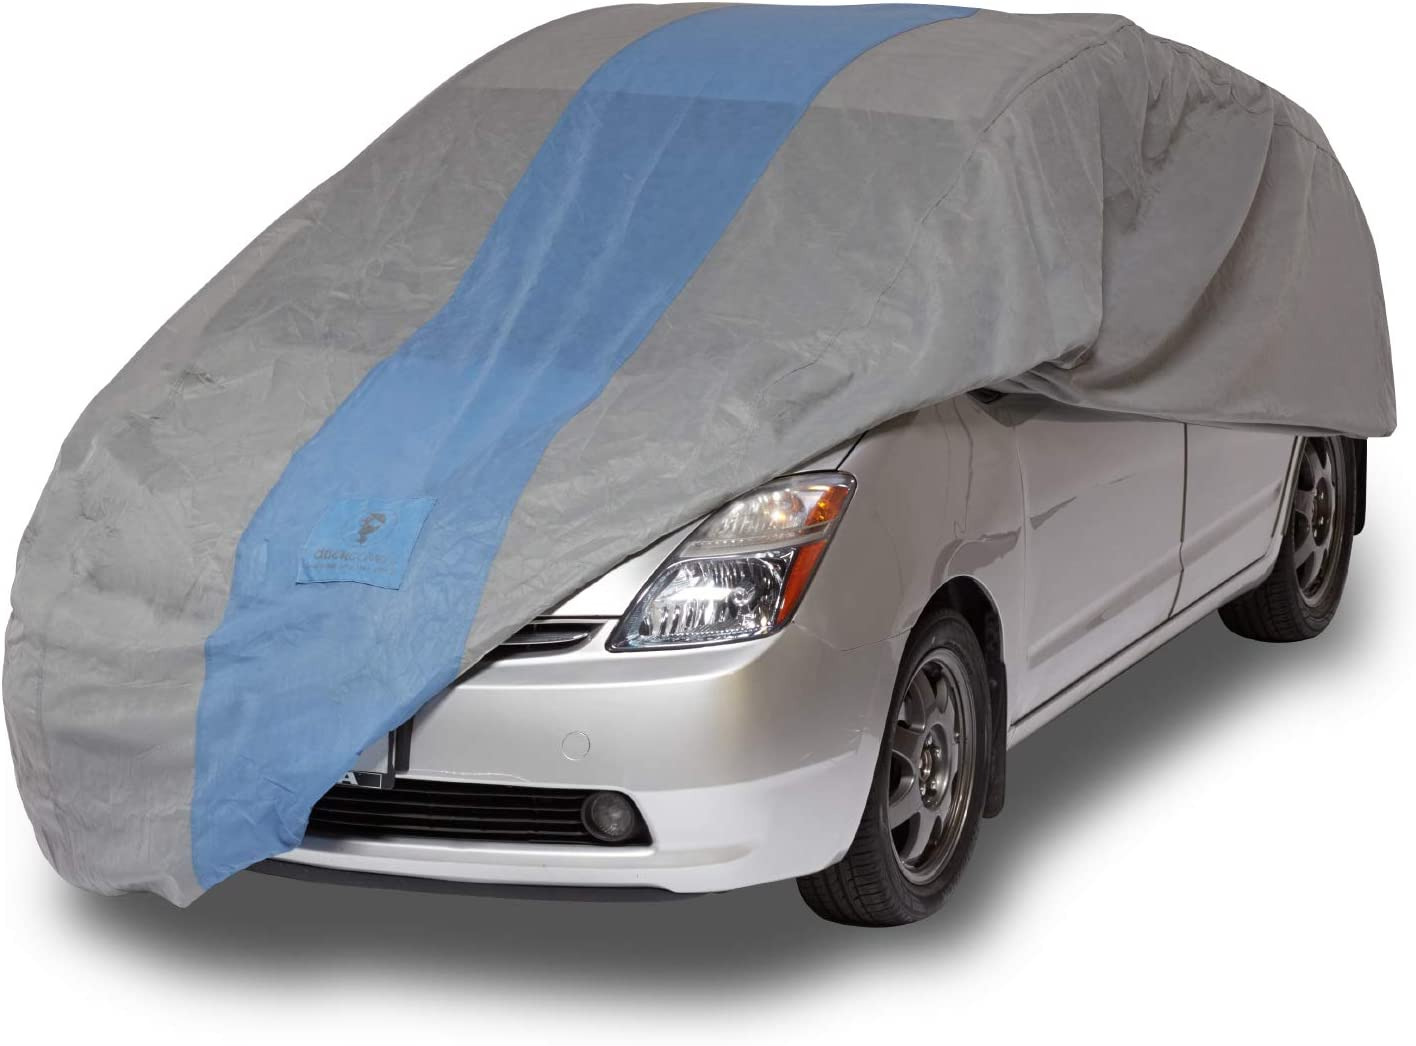 Duck Covers Defender Hatchback Car Cover for Hatchbacks up to 15' 2""